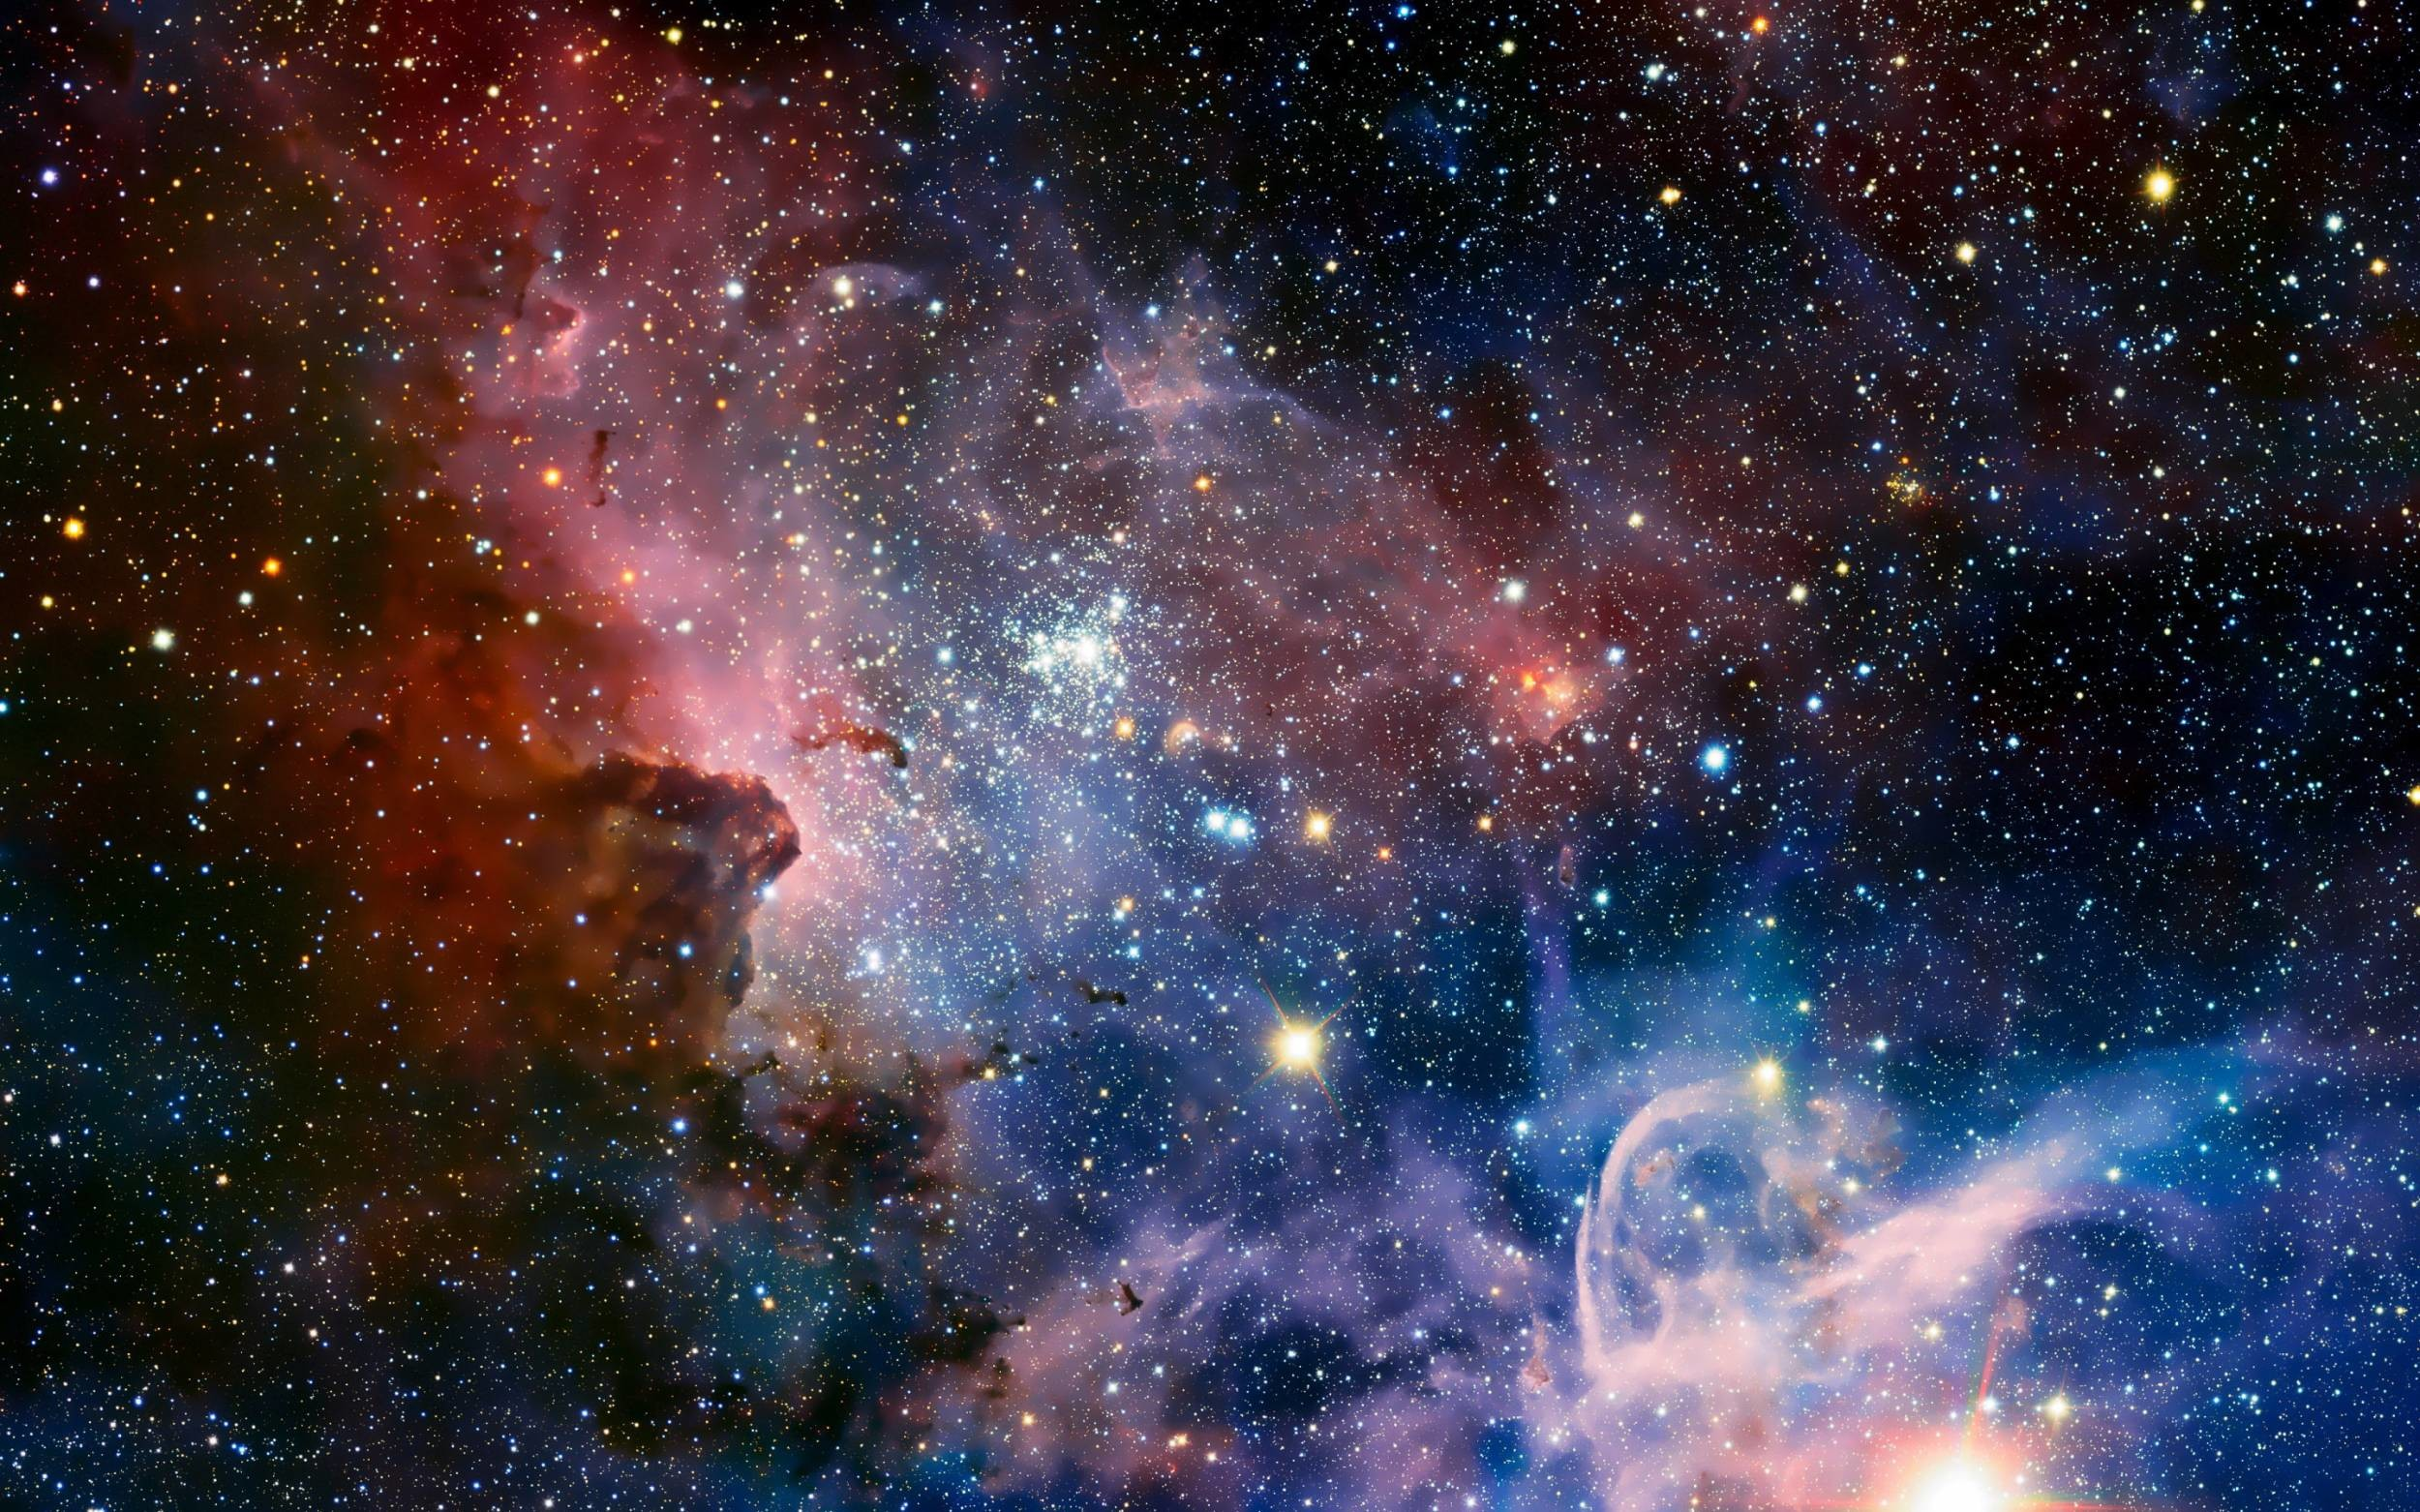 1184074 download free ultra hd space wallpaper 2500x1562 for hd